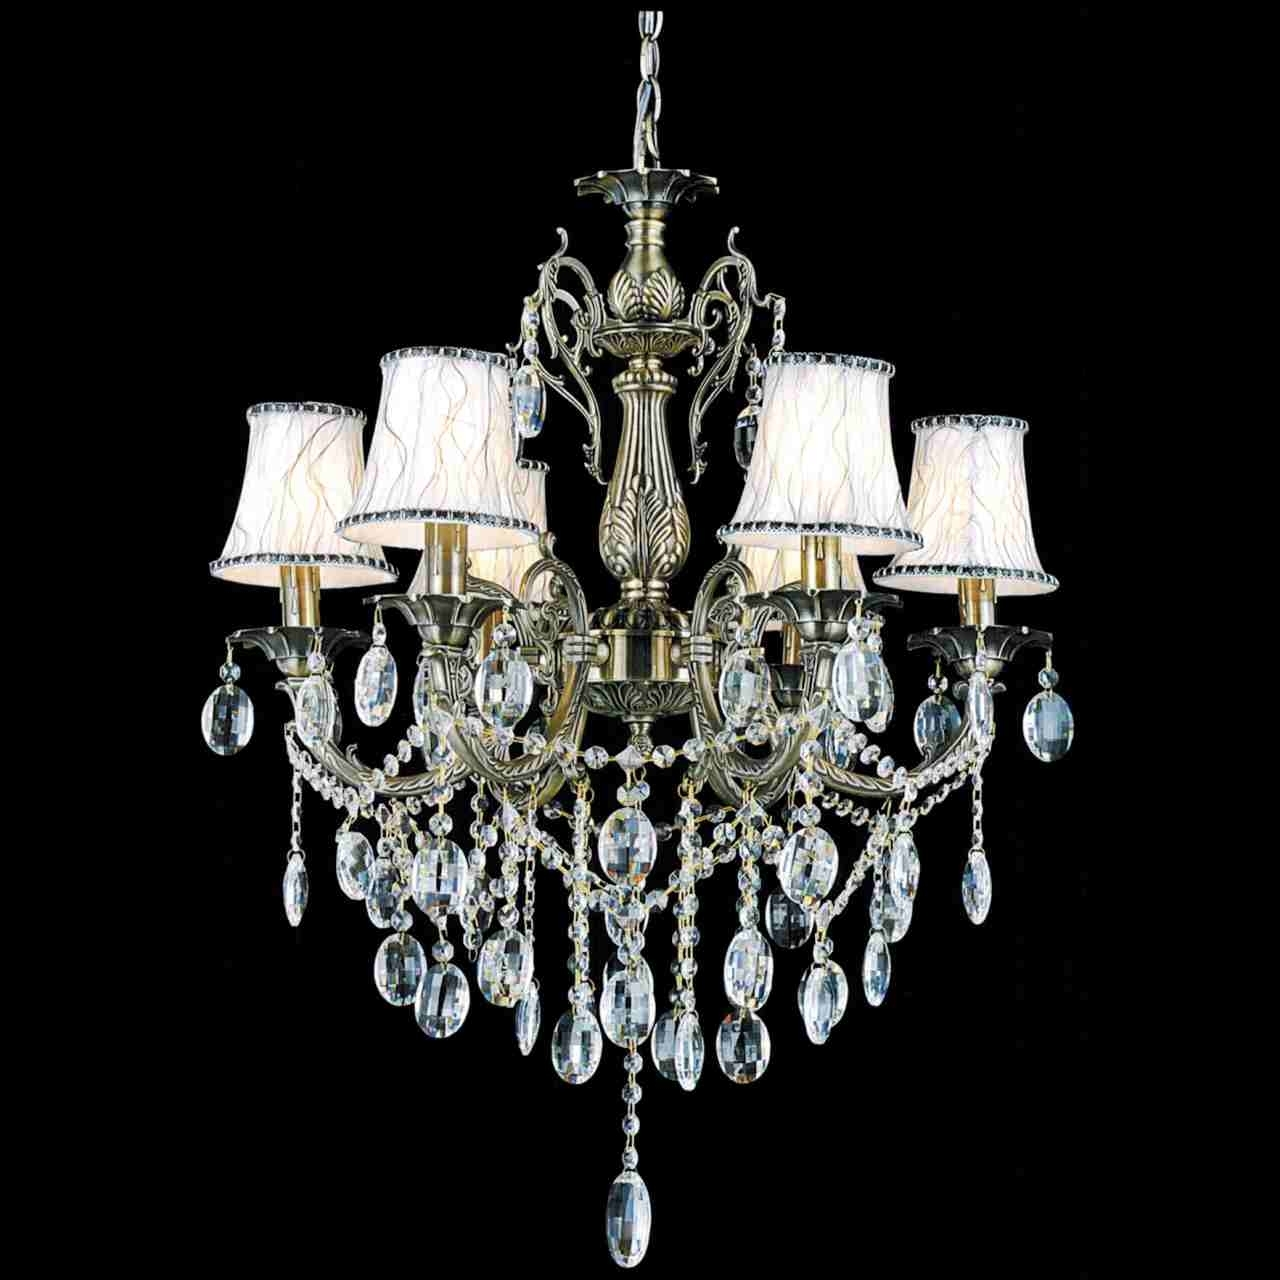 Crystal Chandeliers With Shades Regarding Favorite Brizzo Lighting Stores (View 8 of 20)